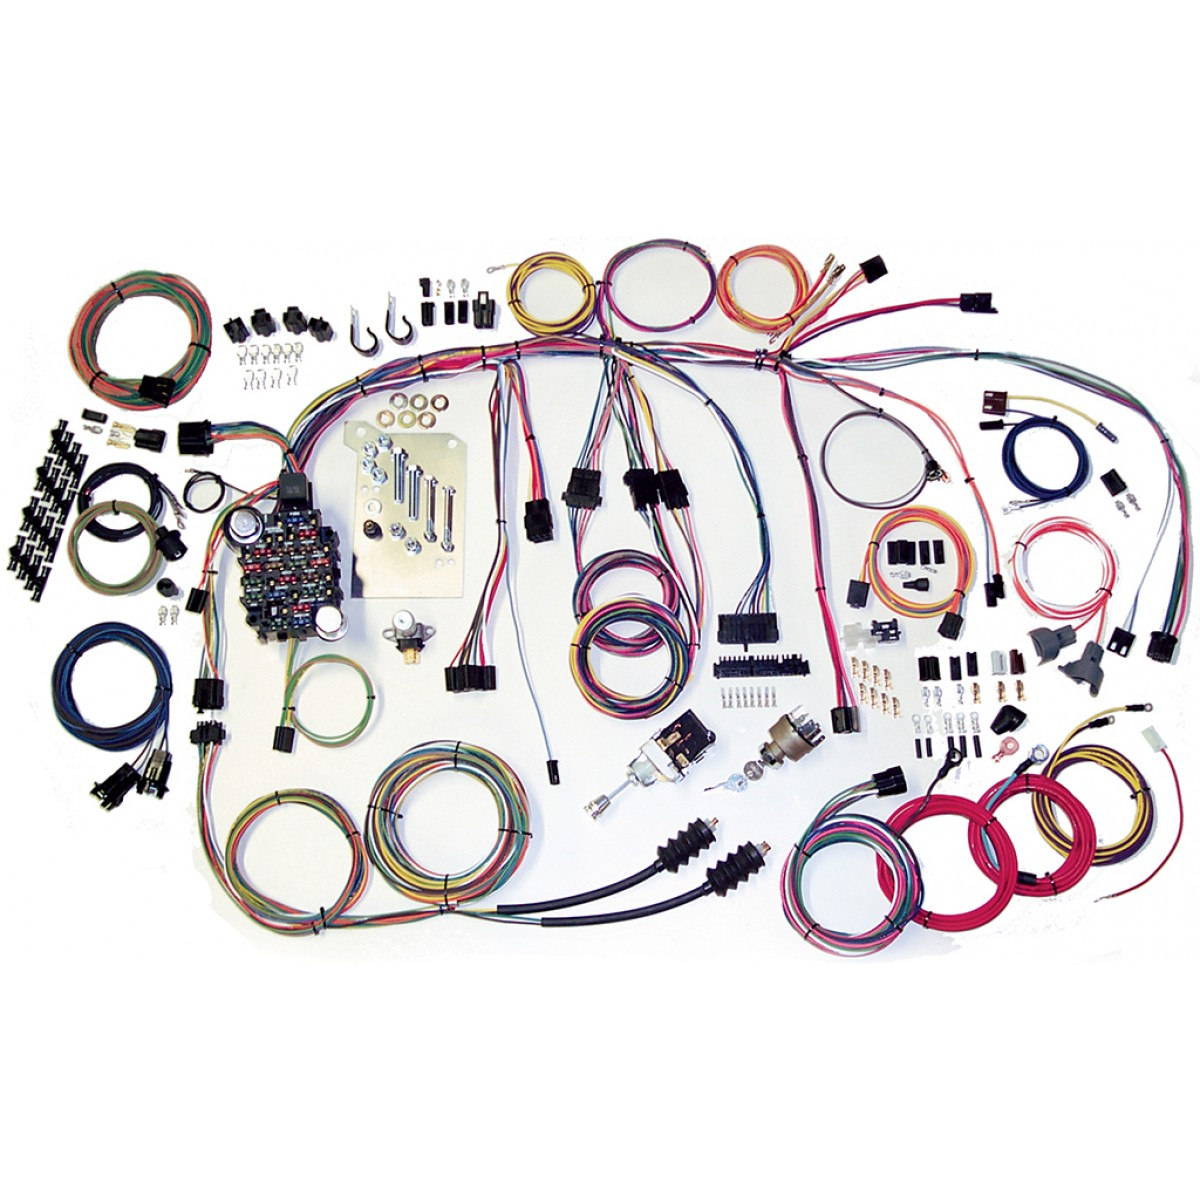 chevy c10 wiring harness complete wiring harness kit 1960 1966 rh code510 com 1969 Chevy C20 Truck Parts 1969 Chevy C20 Truck Parts